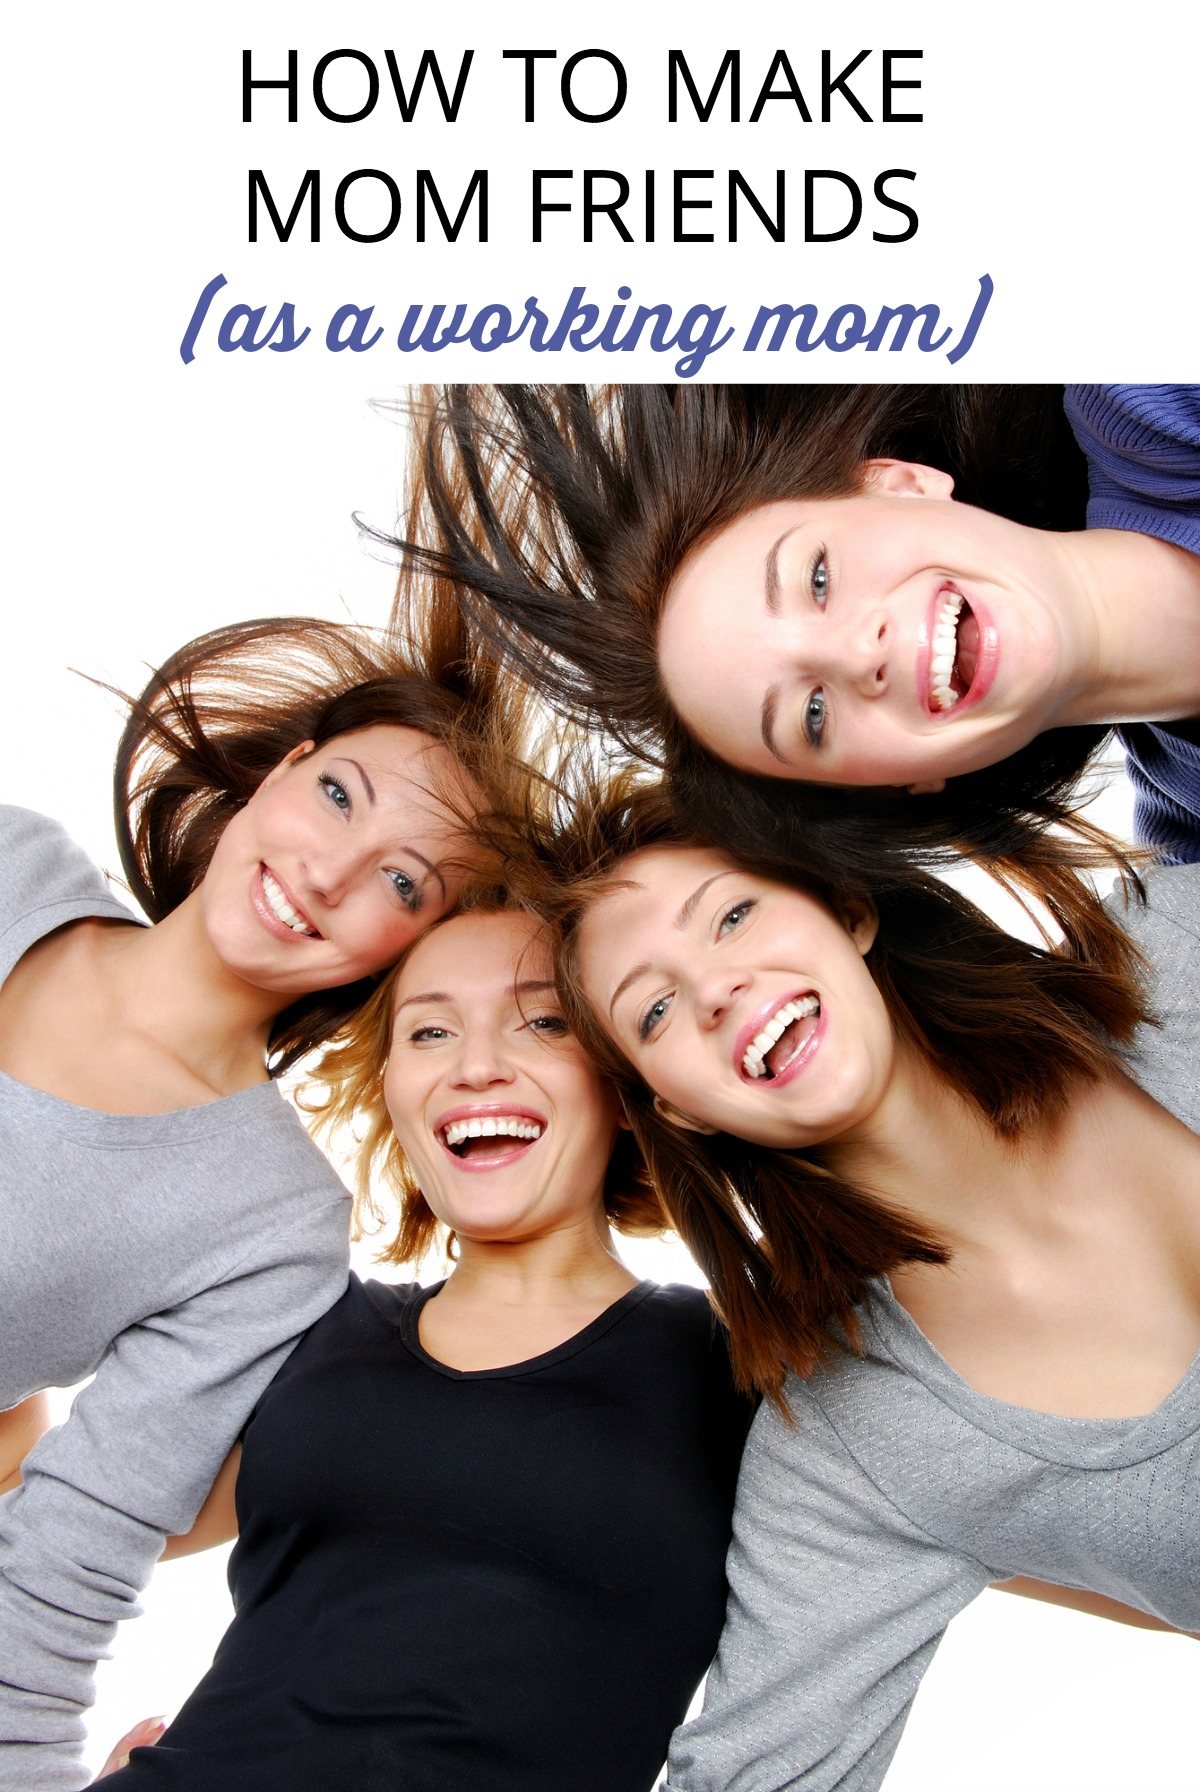 How do you find time for making friends when you work and have kids? Try some of these tips to strike up new friendships with other moms.